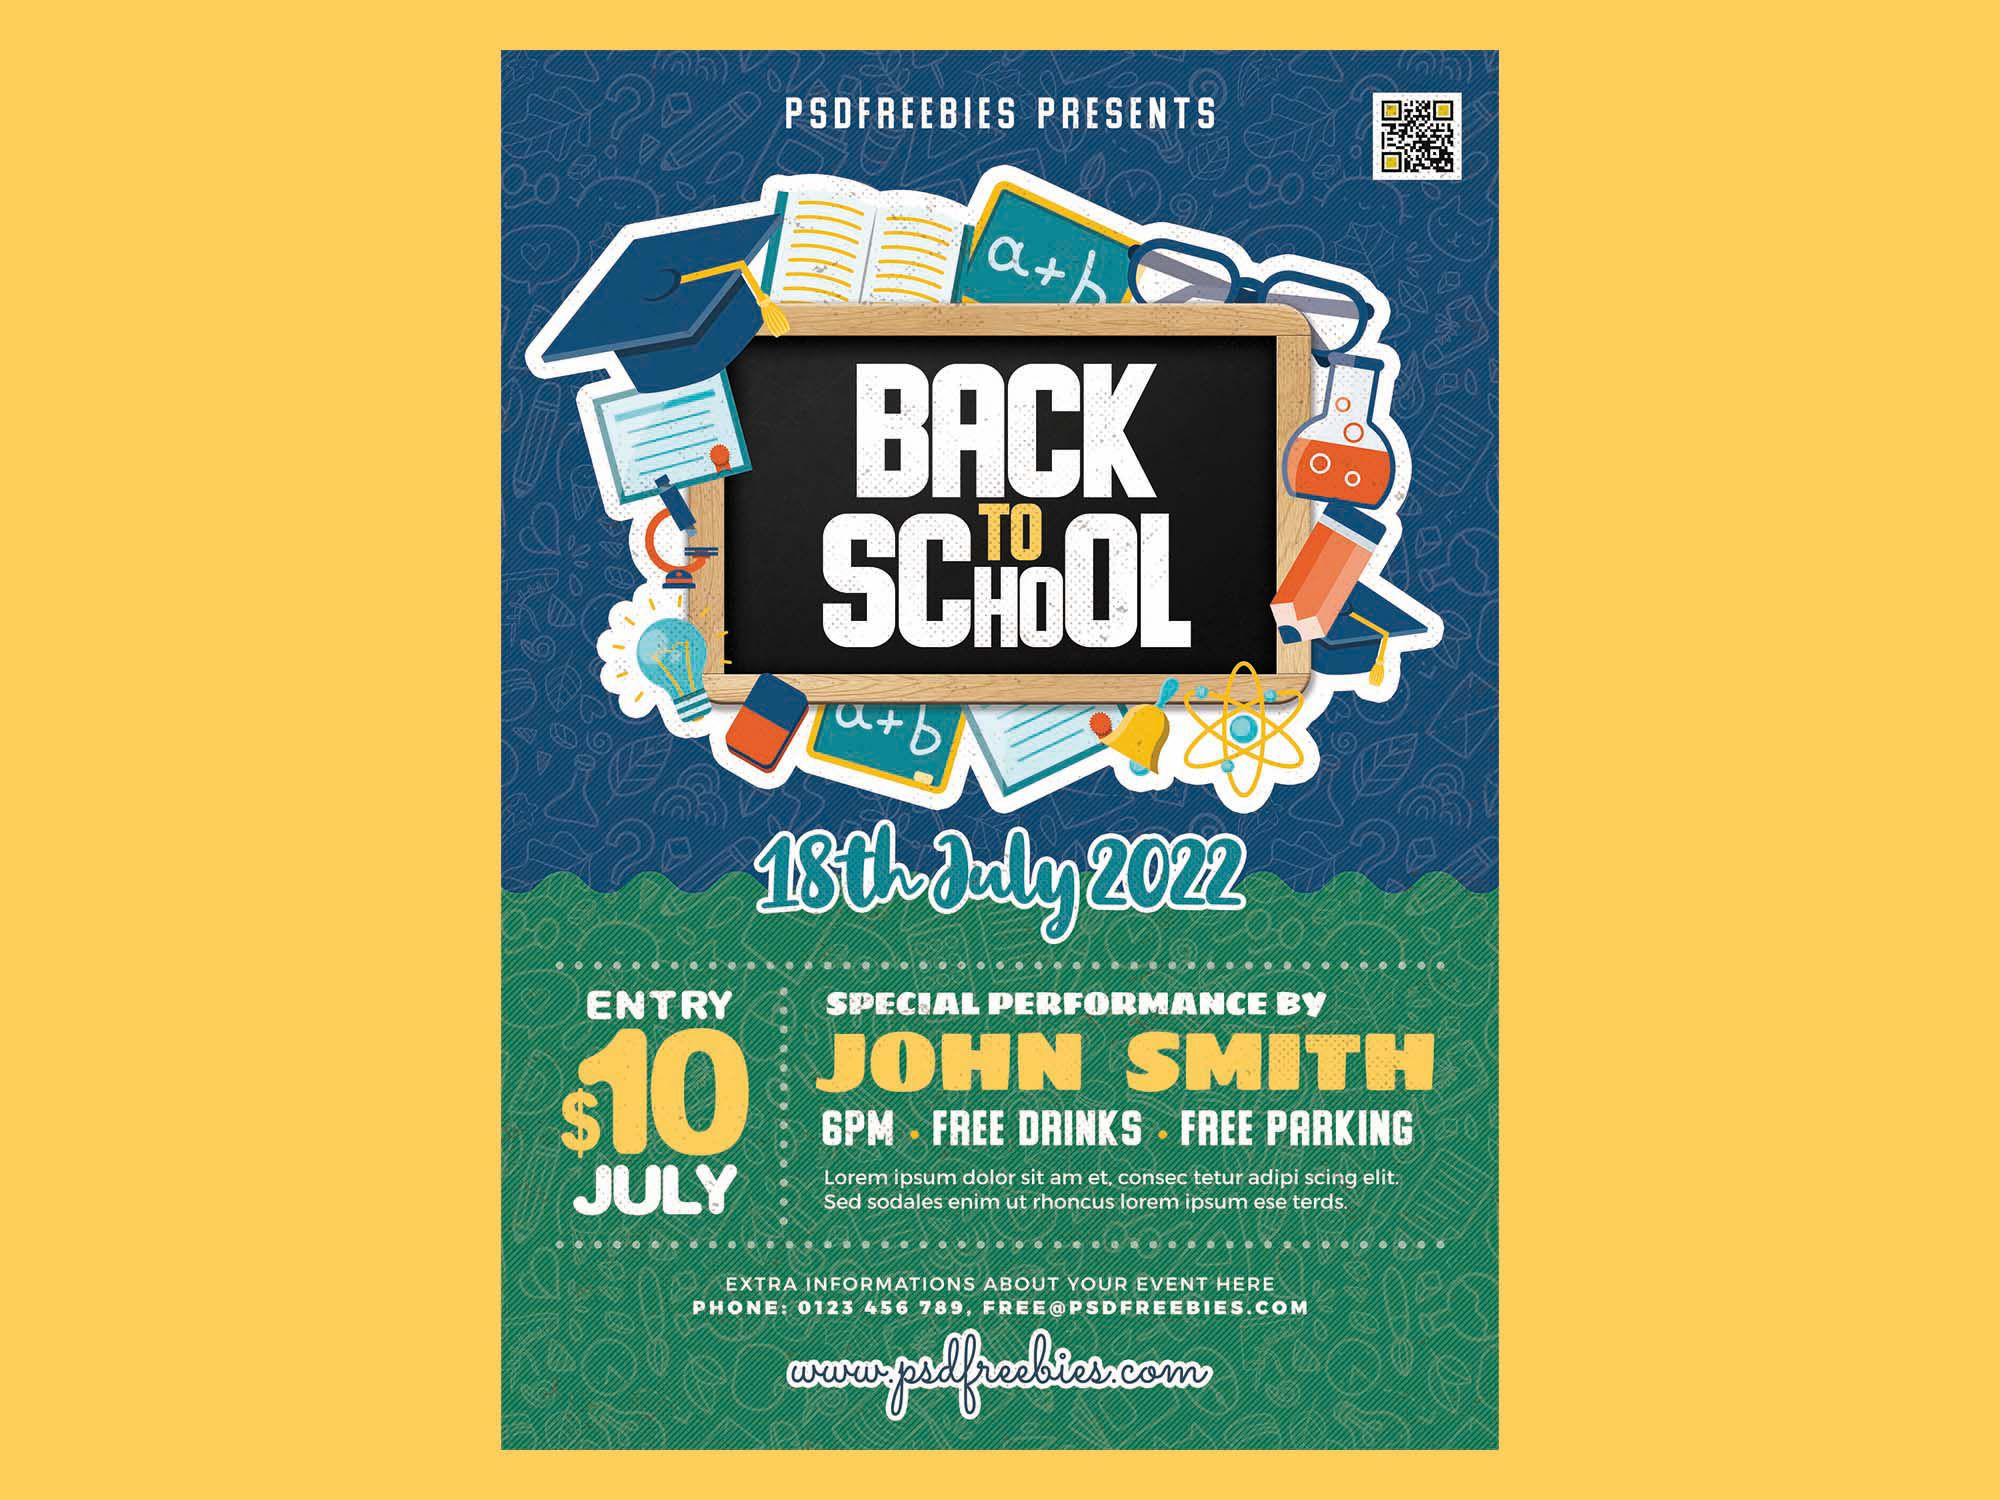 001 Rare Free Back To School Flyer Template Psd High Def Full